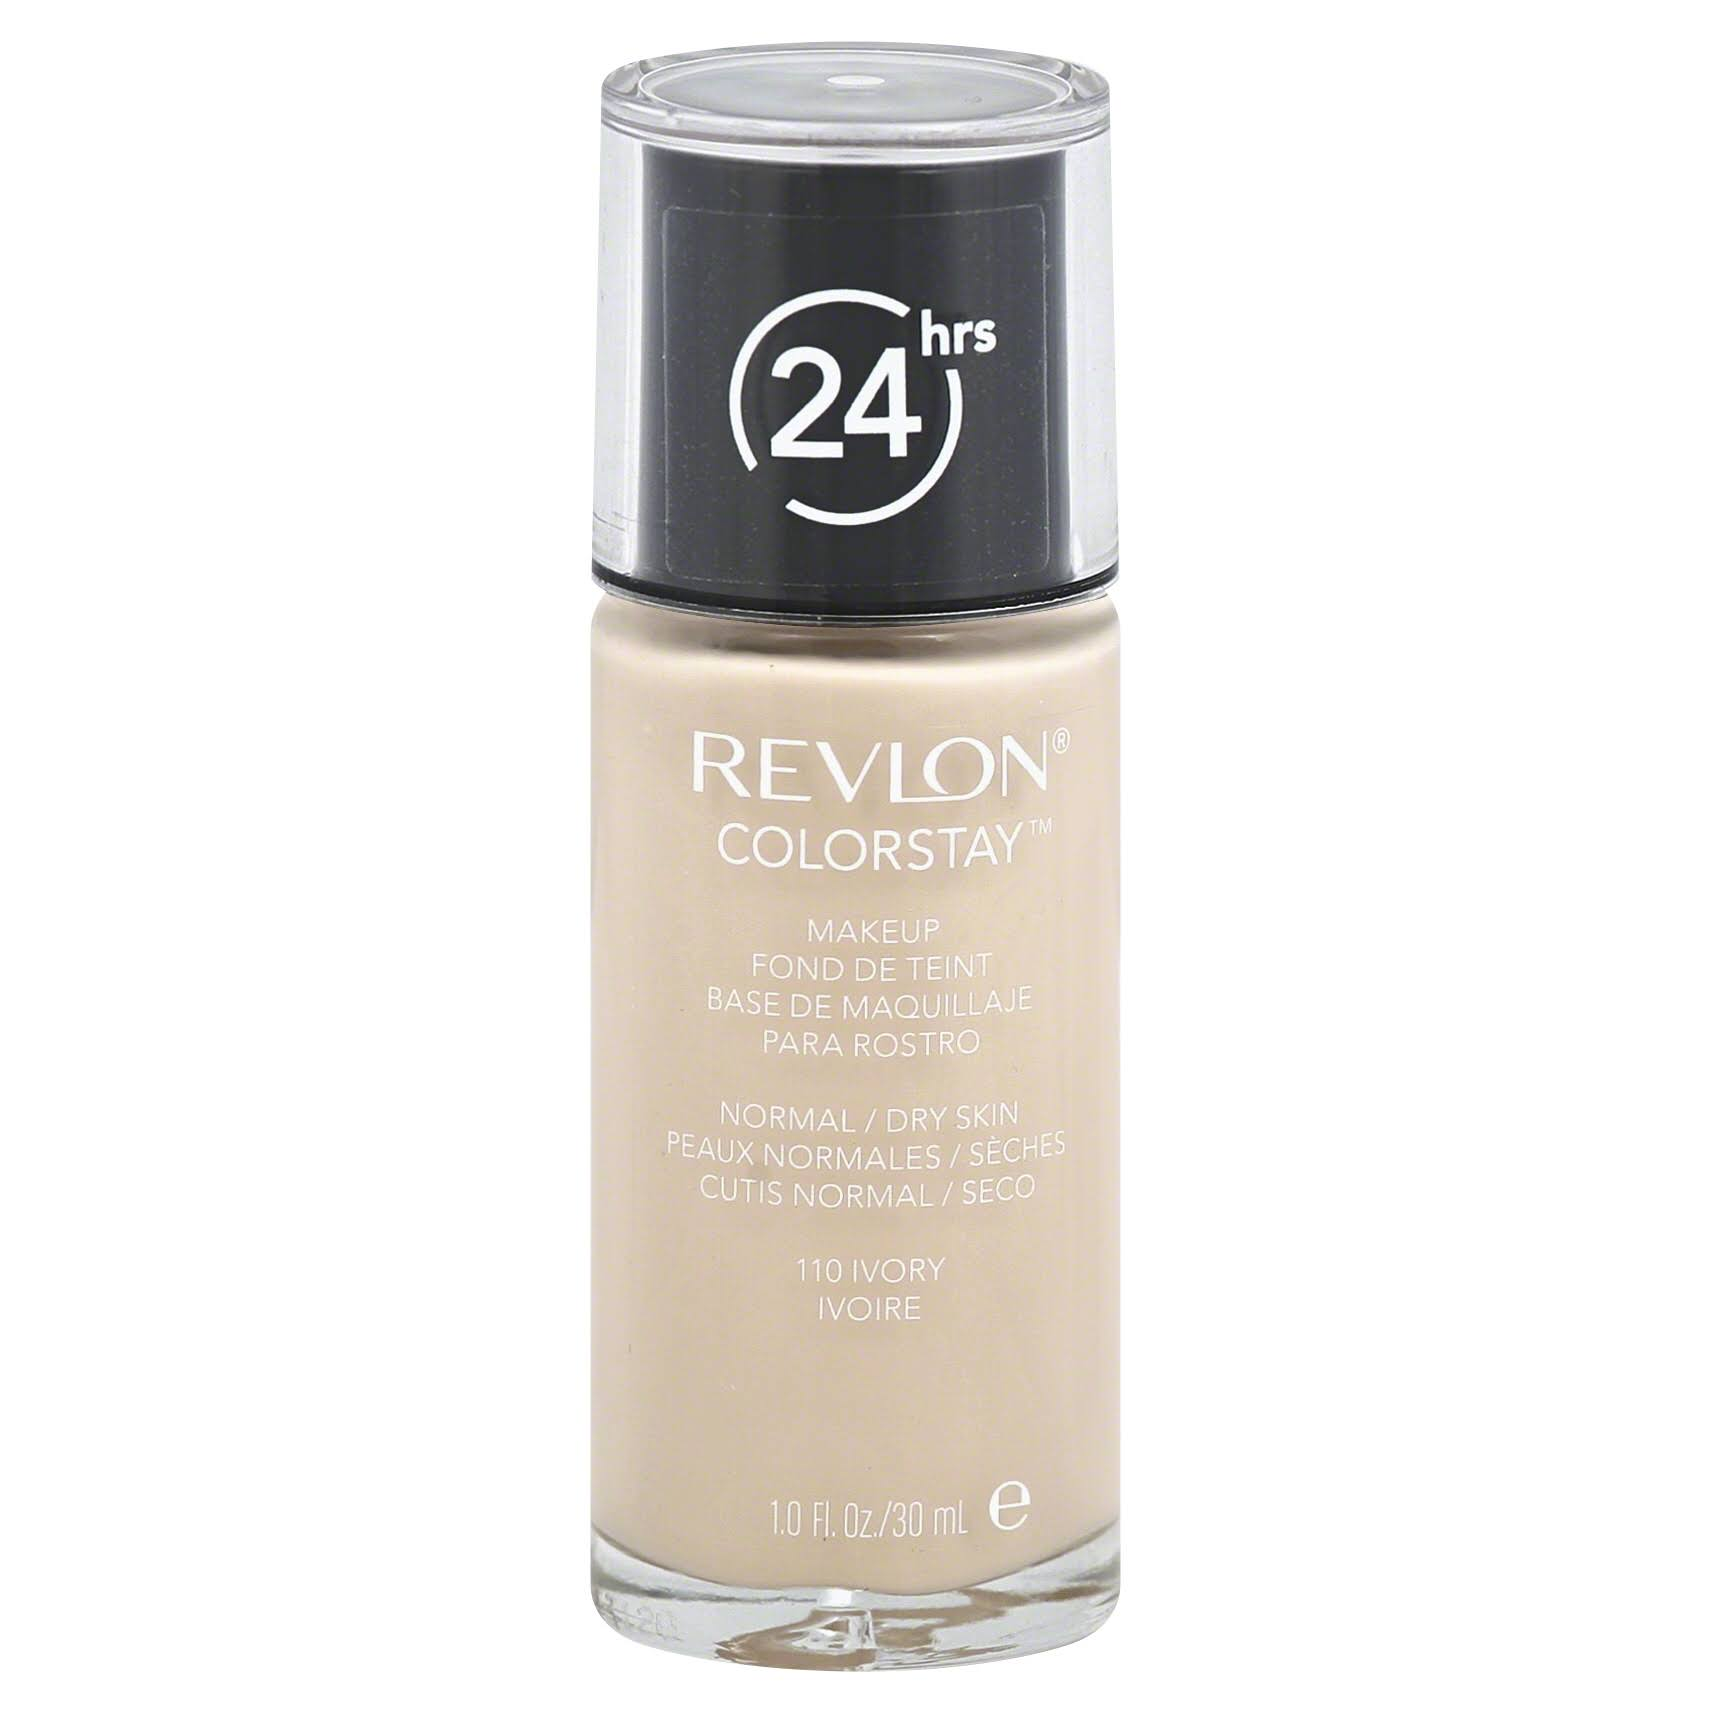 Revlon ColorStay Makeup with SoftFlex SPF 15 - 110 Ivory